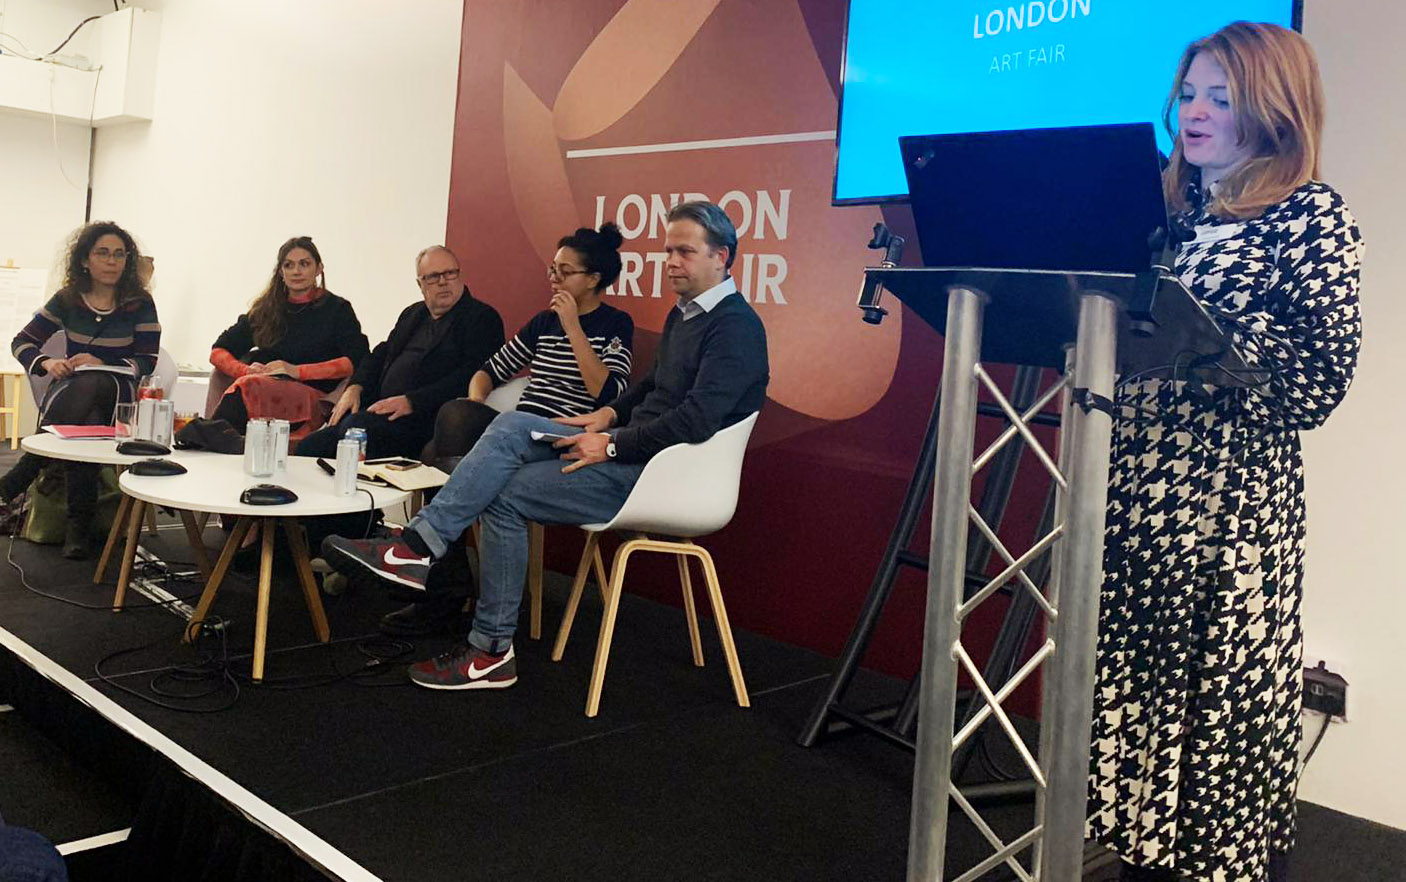 Panel discussion at the London Art Fair